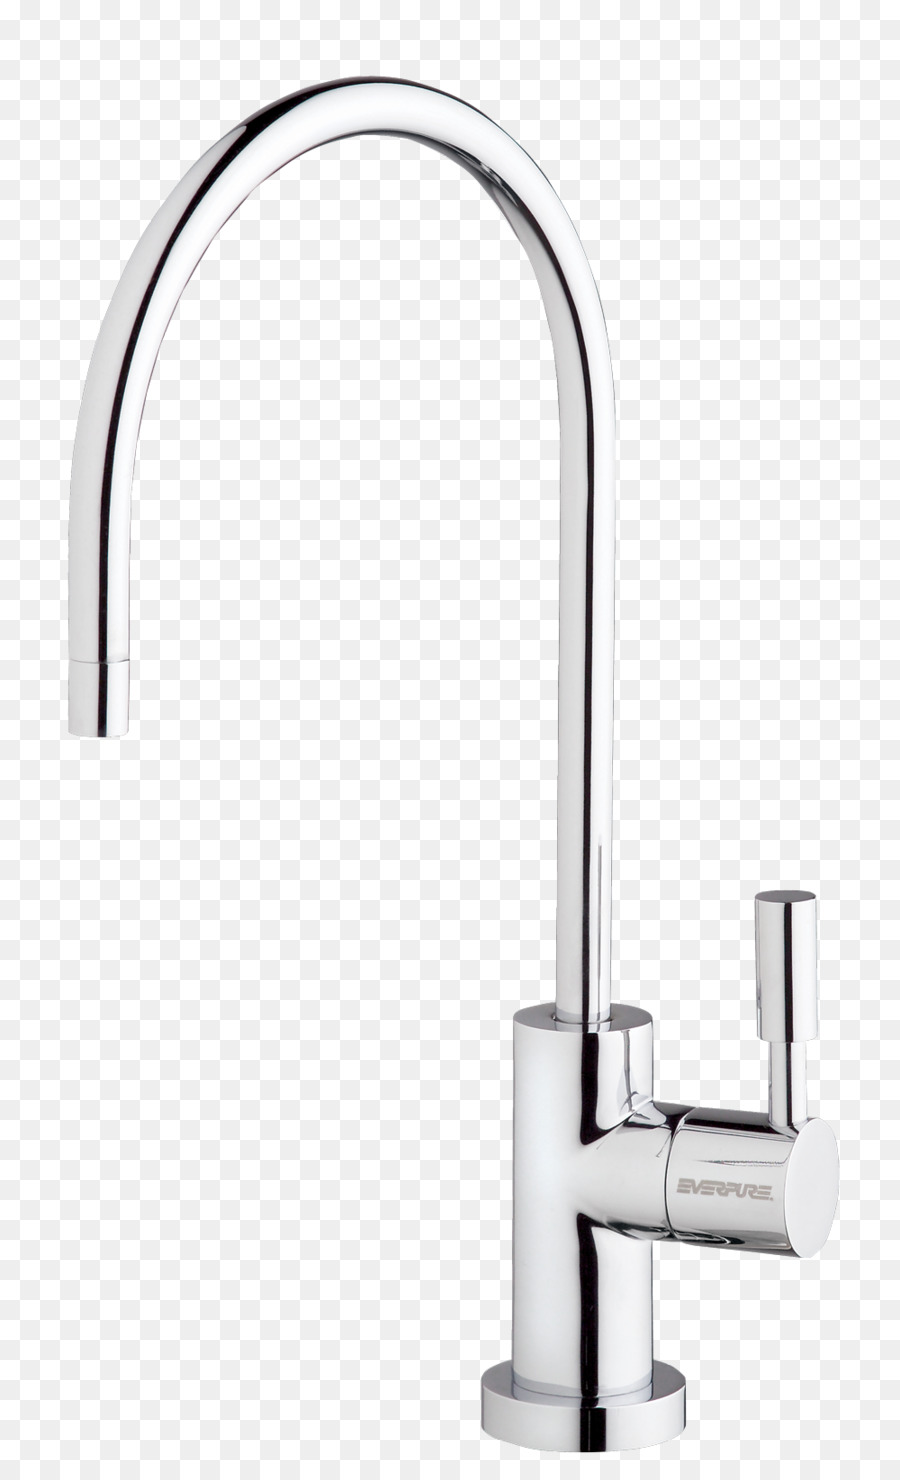 faucet fm stage classic filter vertical water clear system white pur